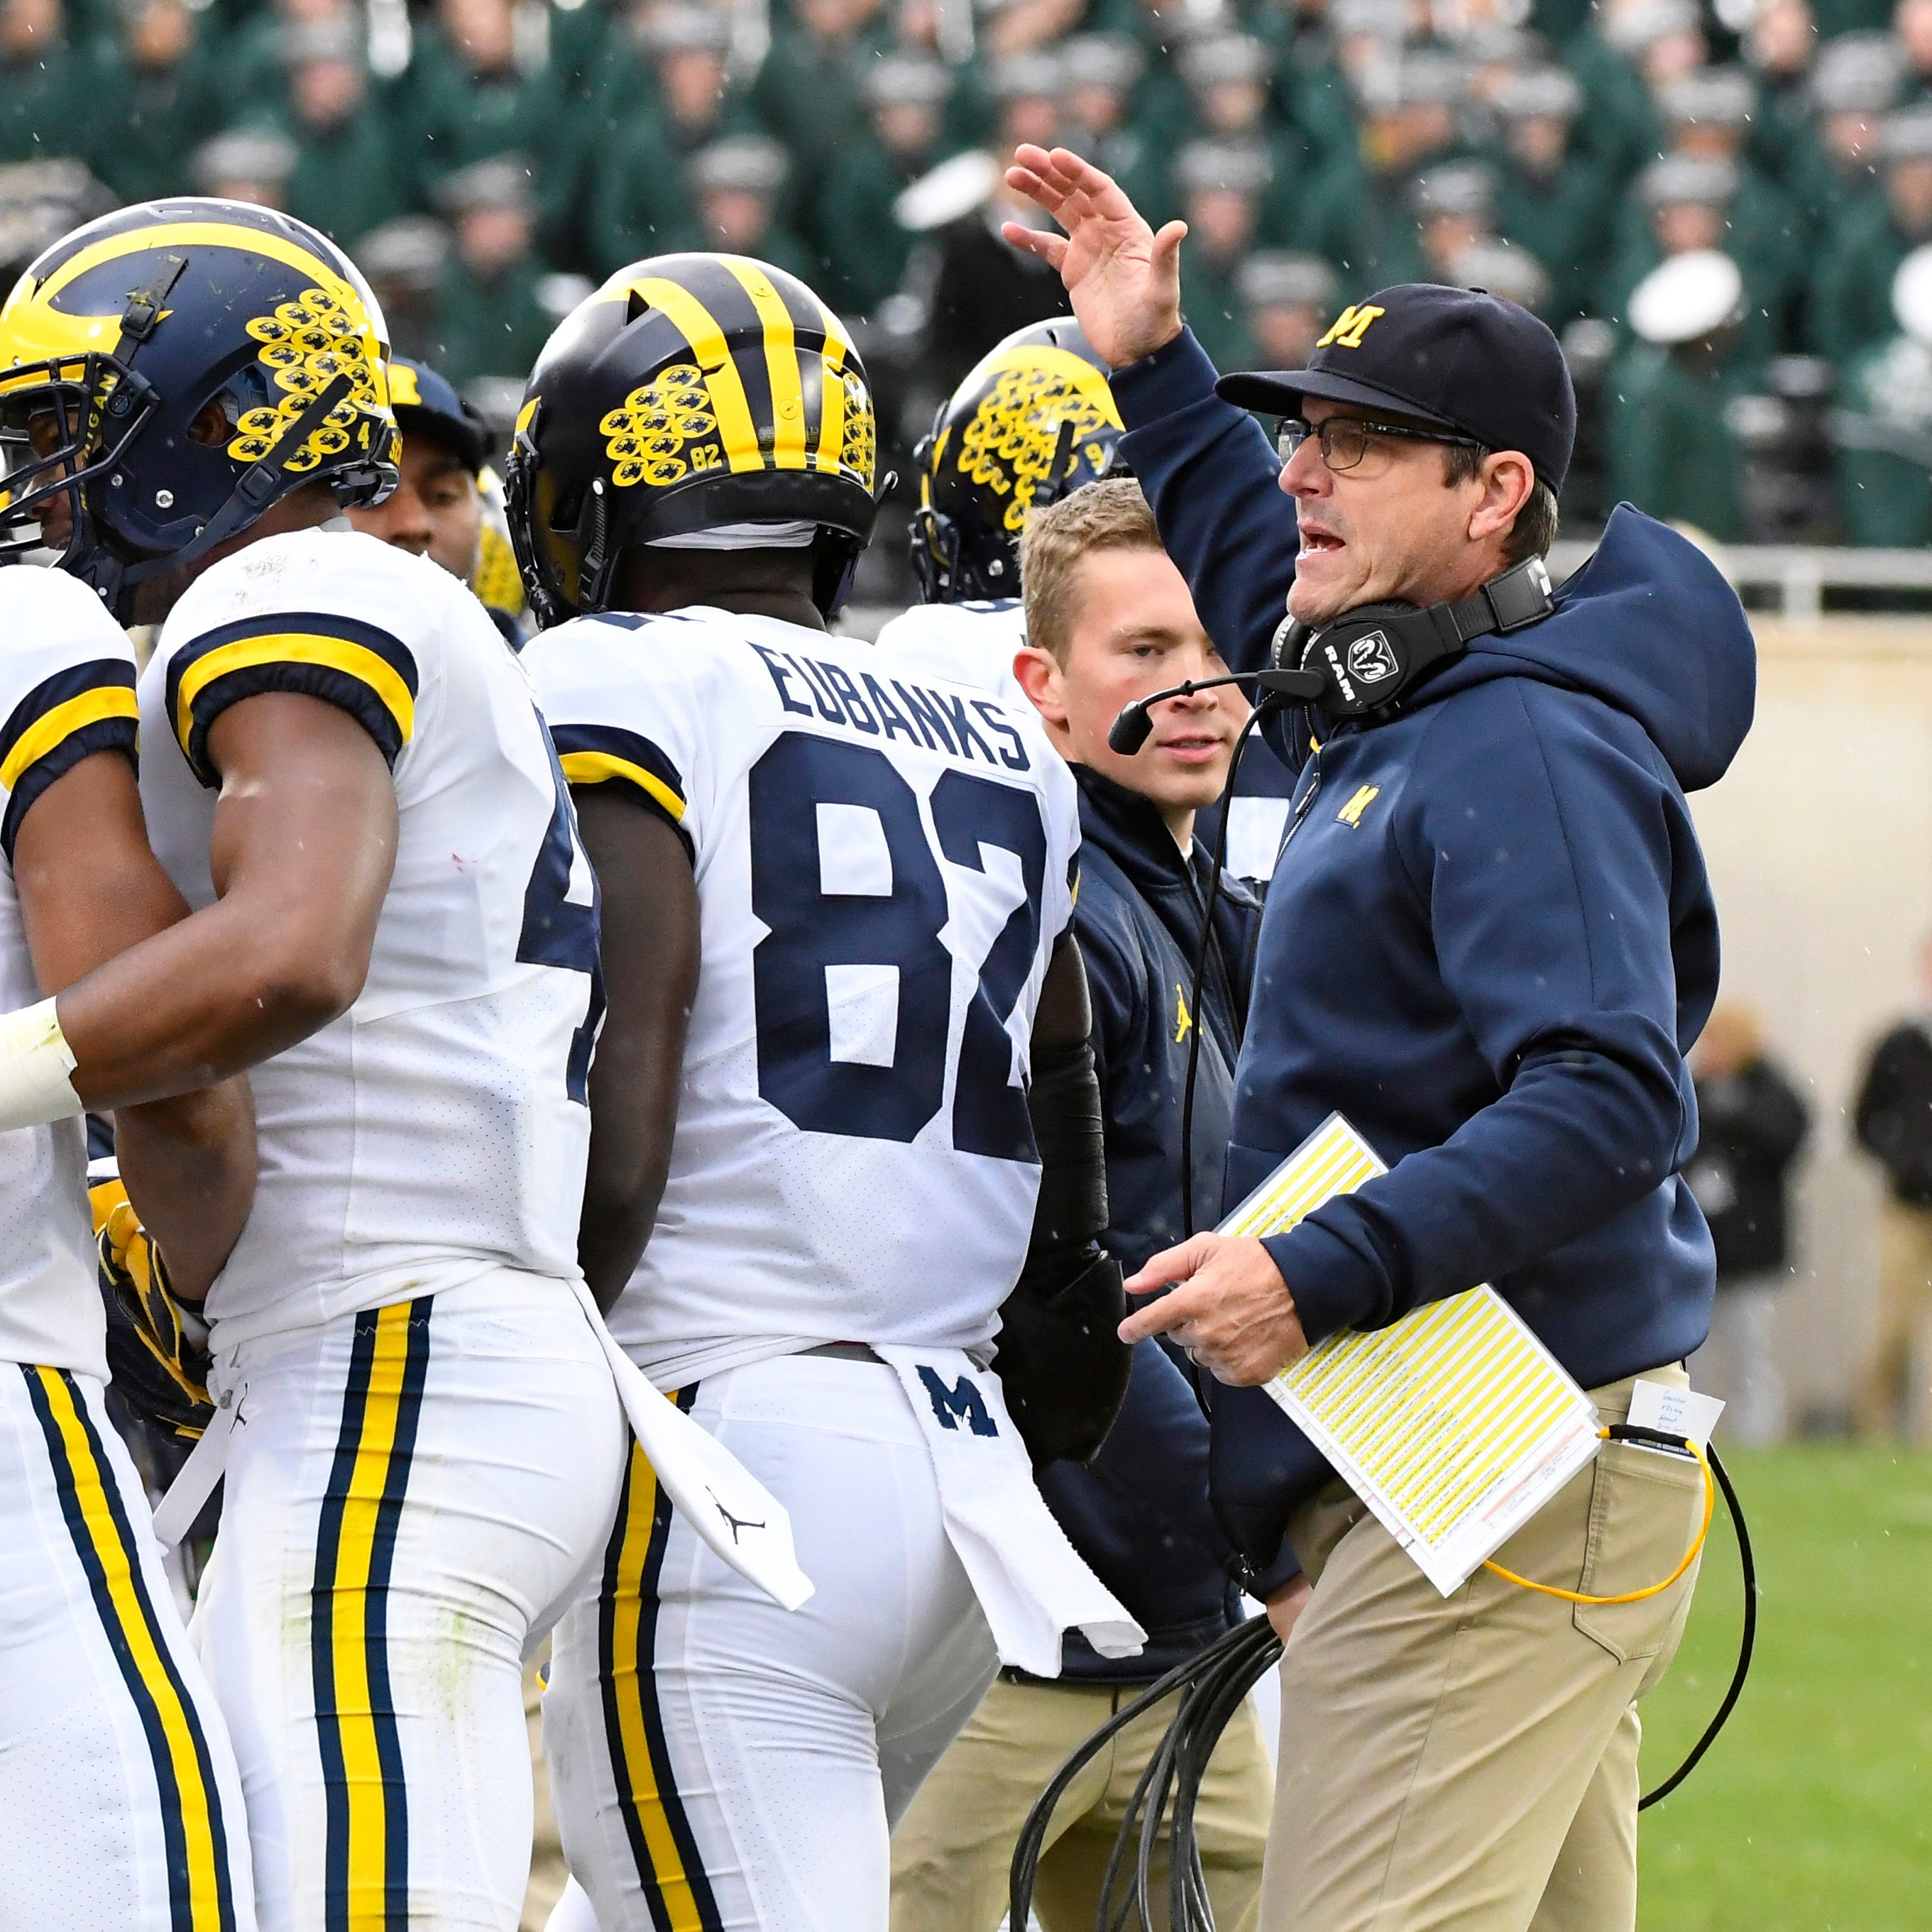 'Stormtrooper march': Harbaugh doubles down on criticism of Dantonio, MSU